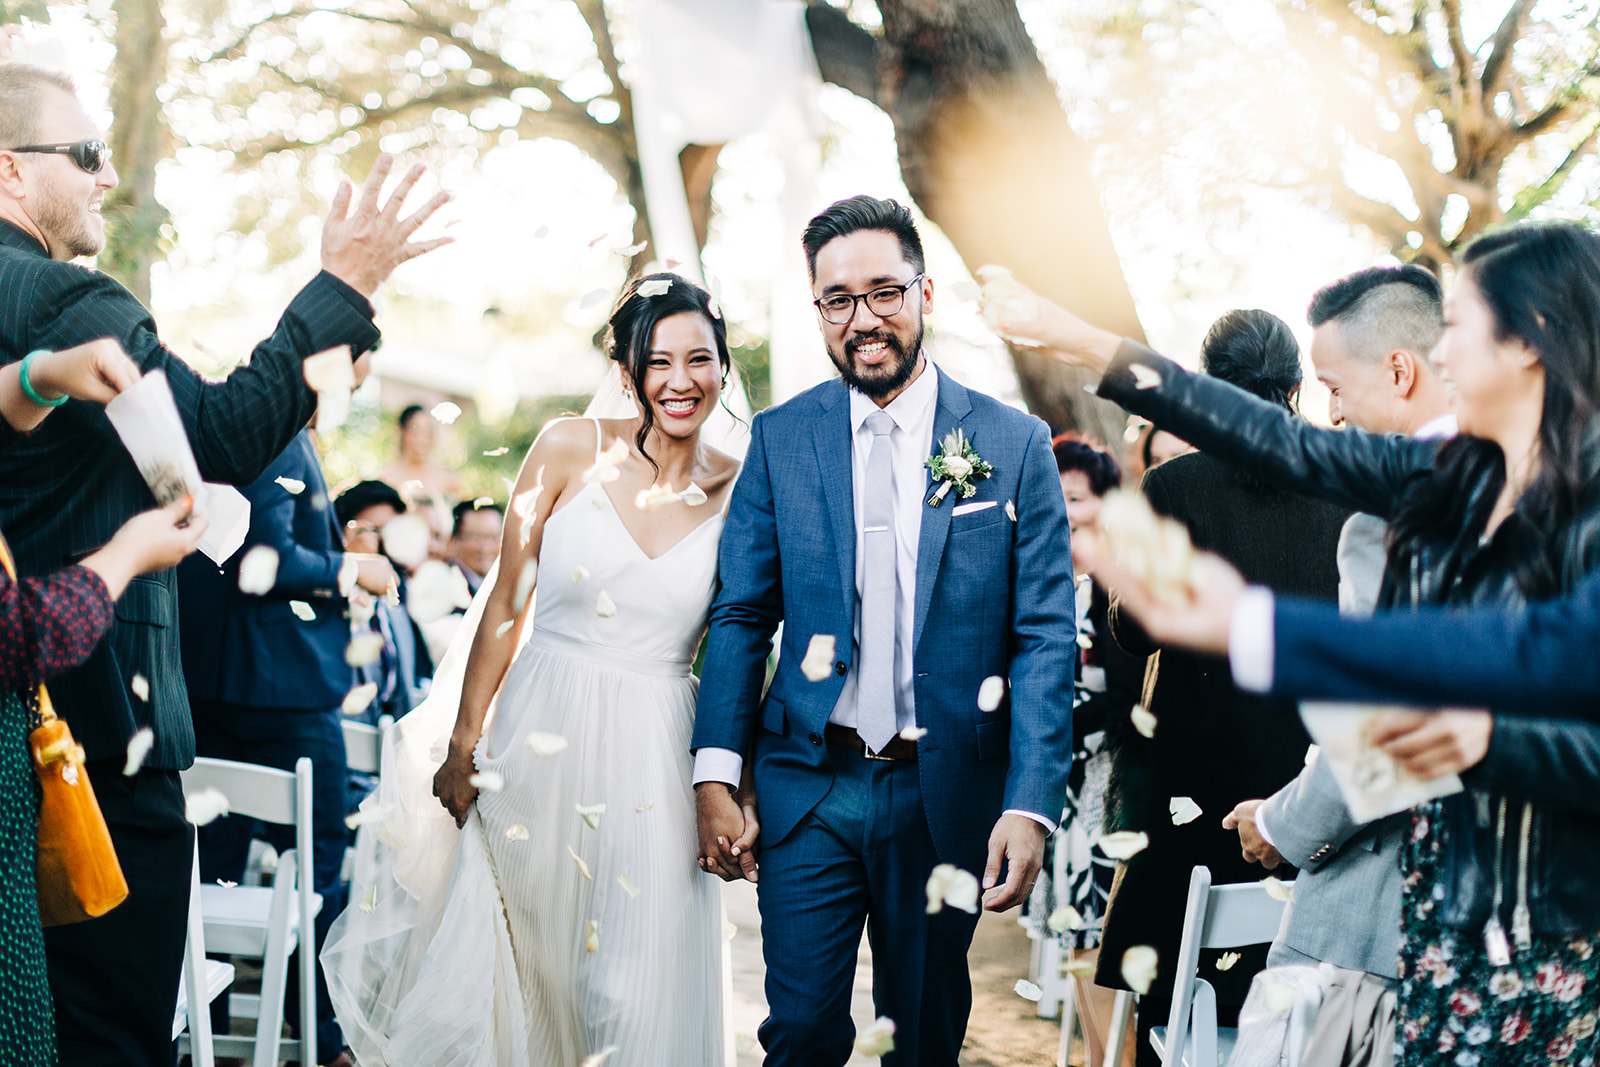 Los-Altos-History-Museum-Wedding_Orange-County-Wedding-Photographer_Clarisse-Rae-Photo-Video_63